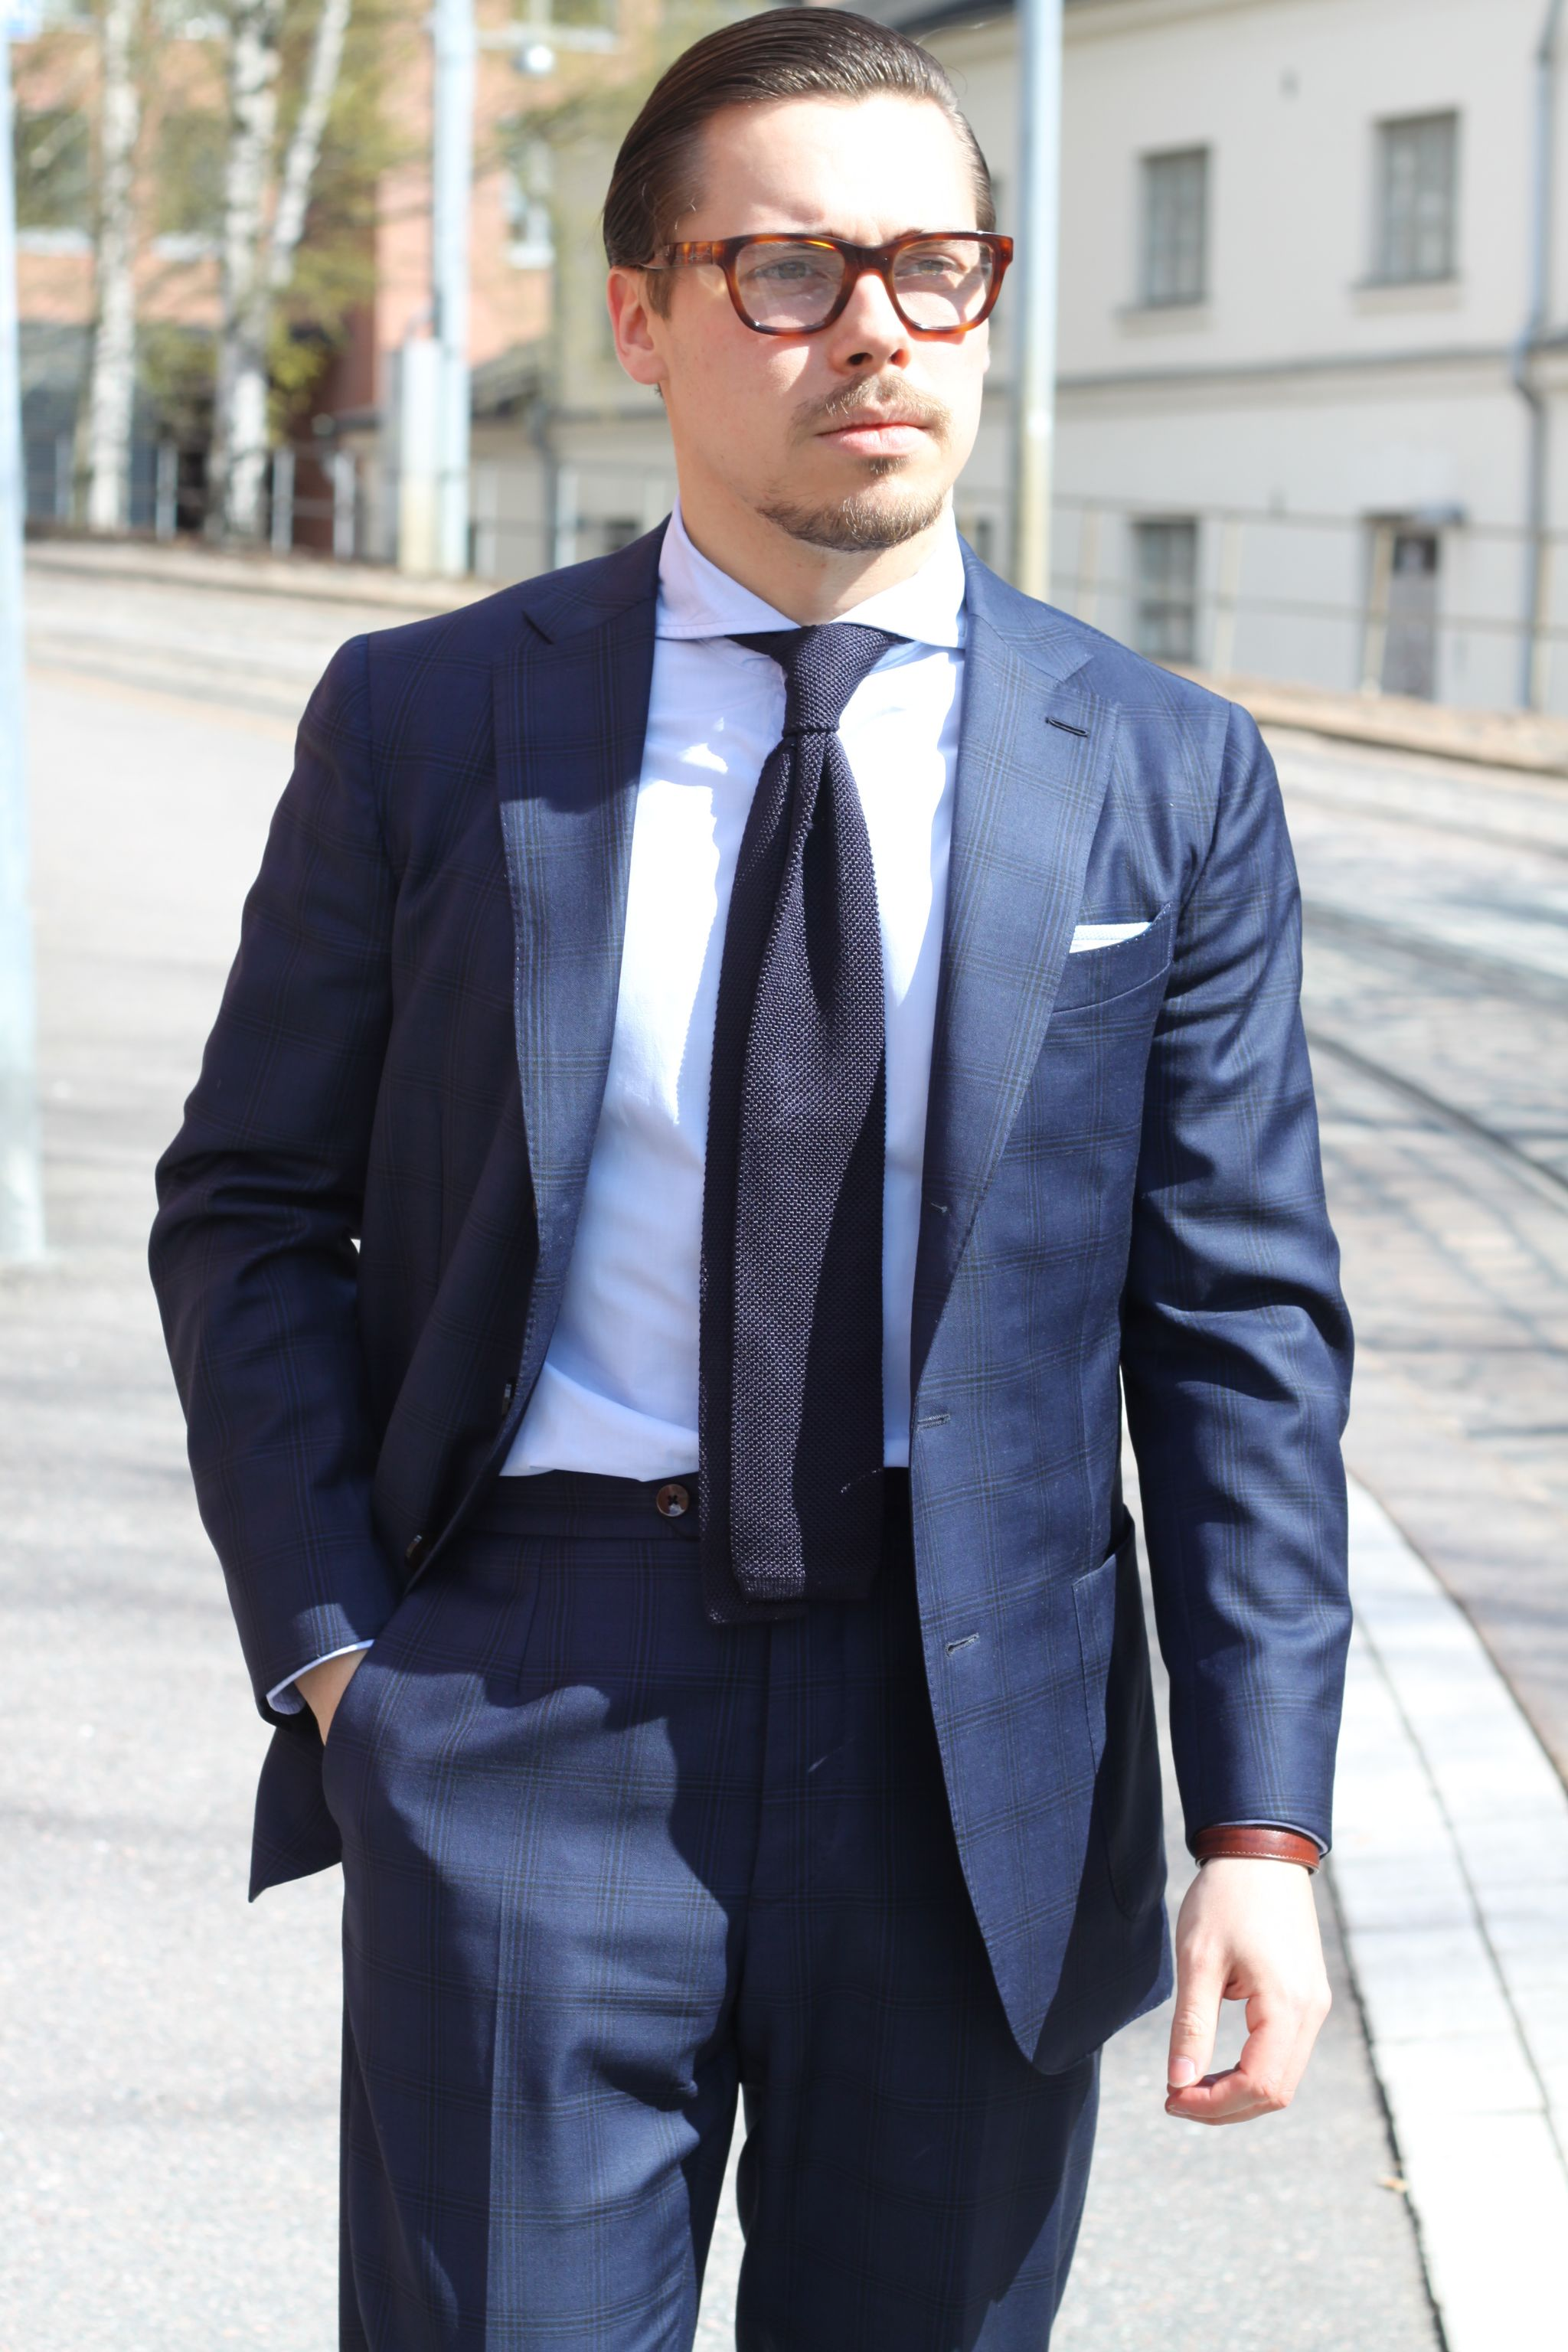 Blue suit with light blue shirt and knitted tie